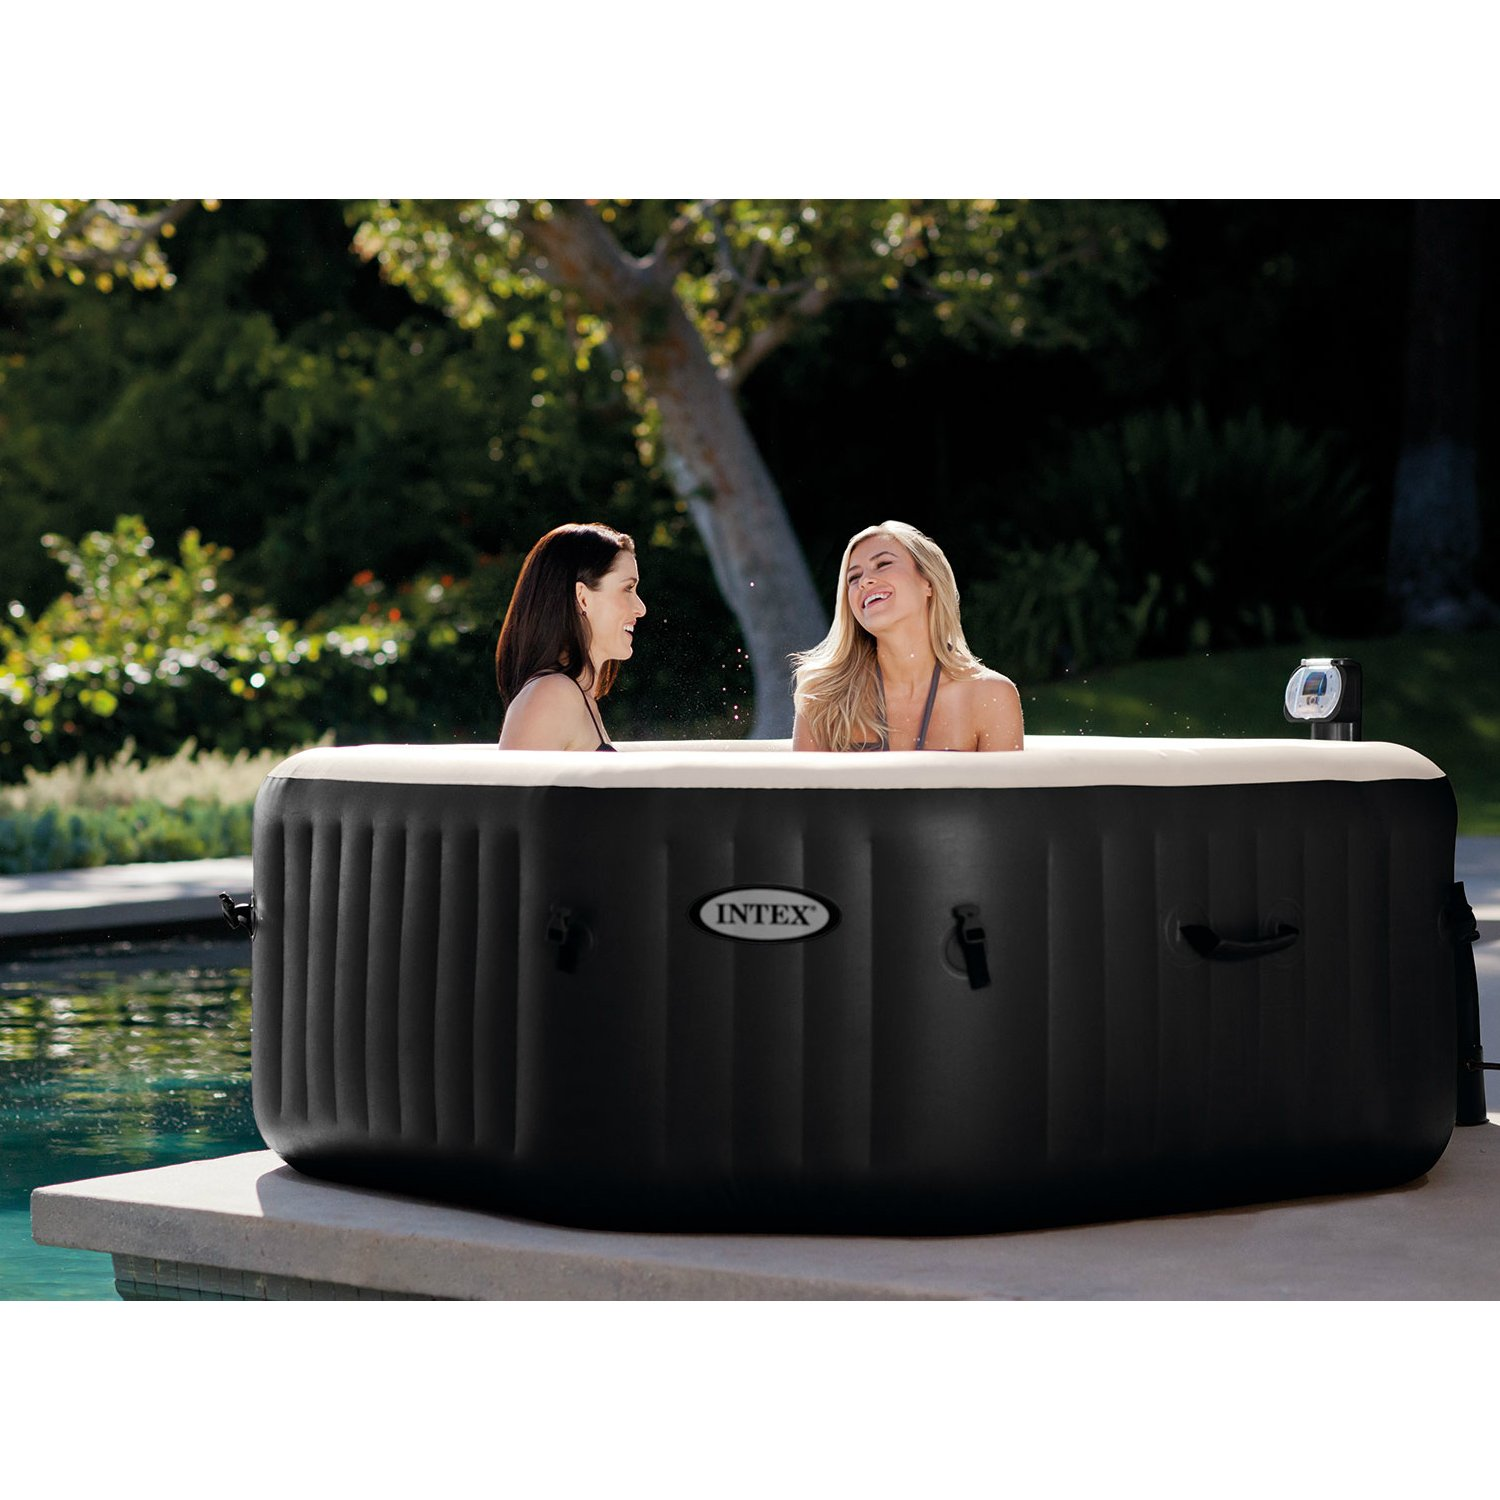 Amazon.com : Intex PureSpa Jet & Bubble Deluxe Portable Hot Tub ...